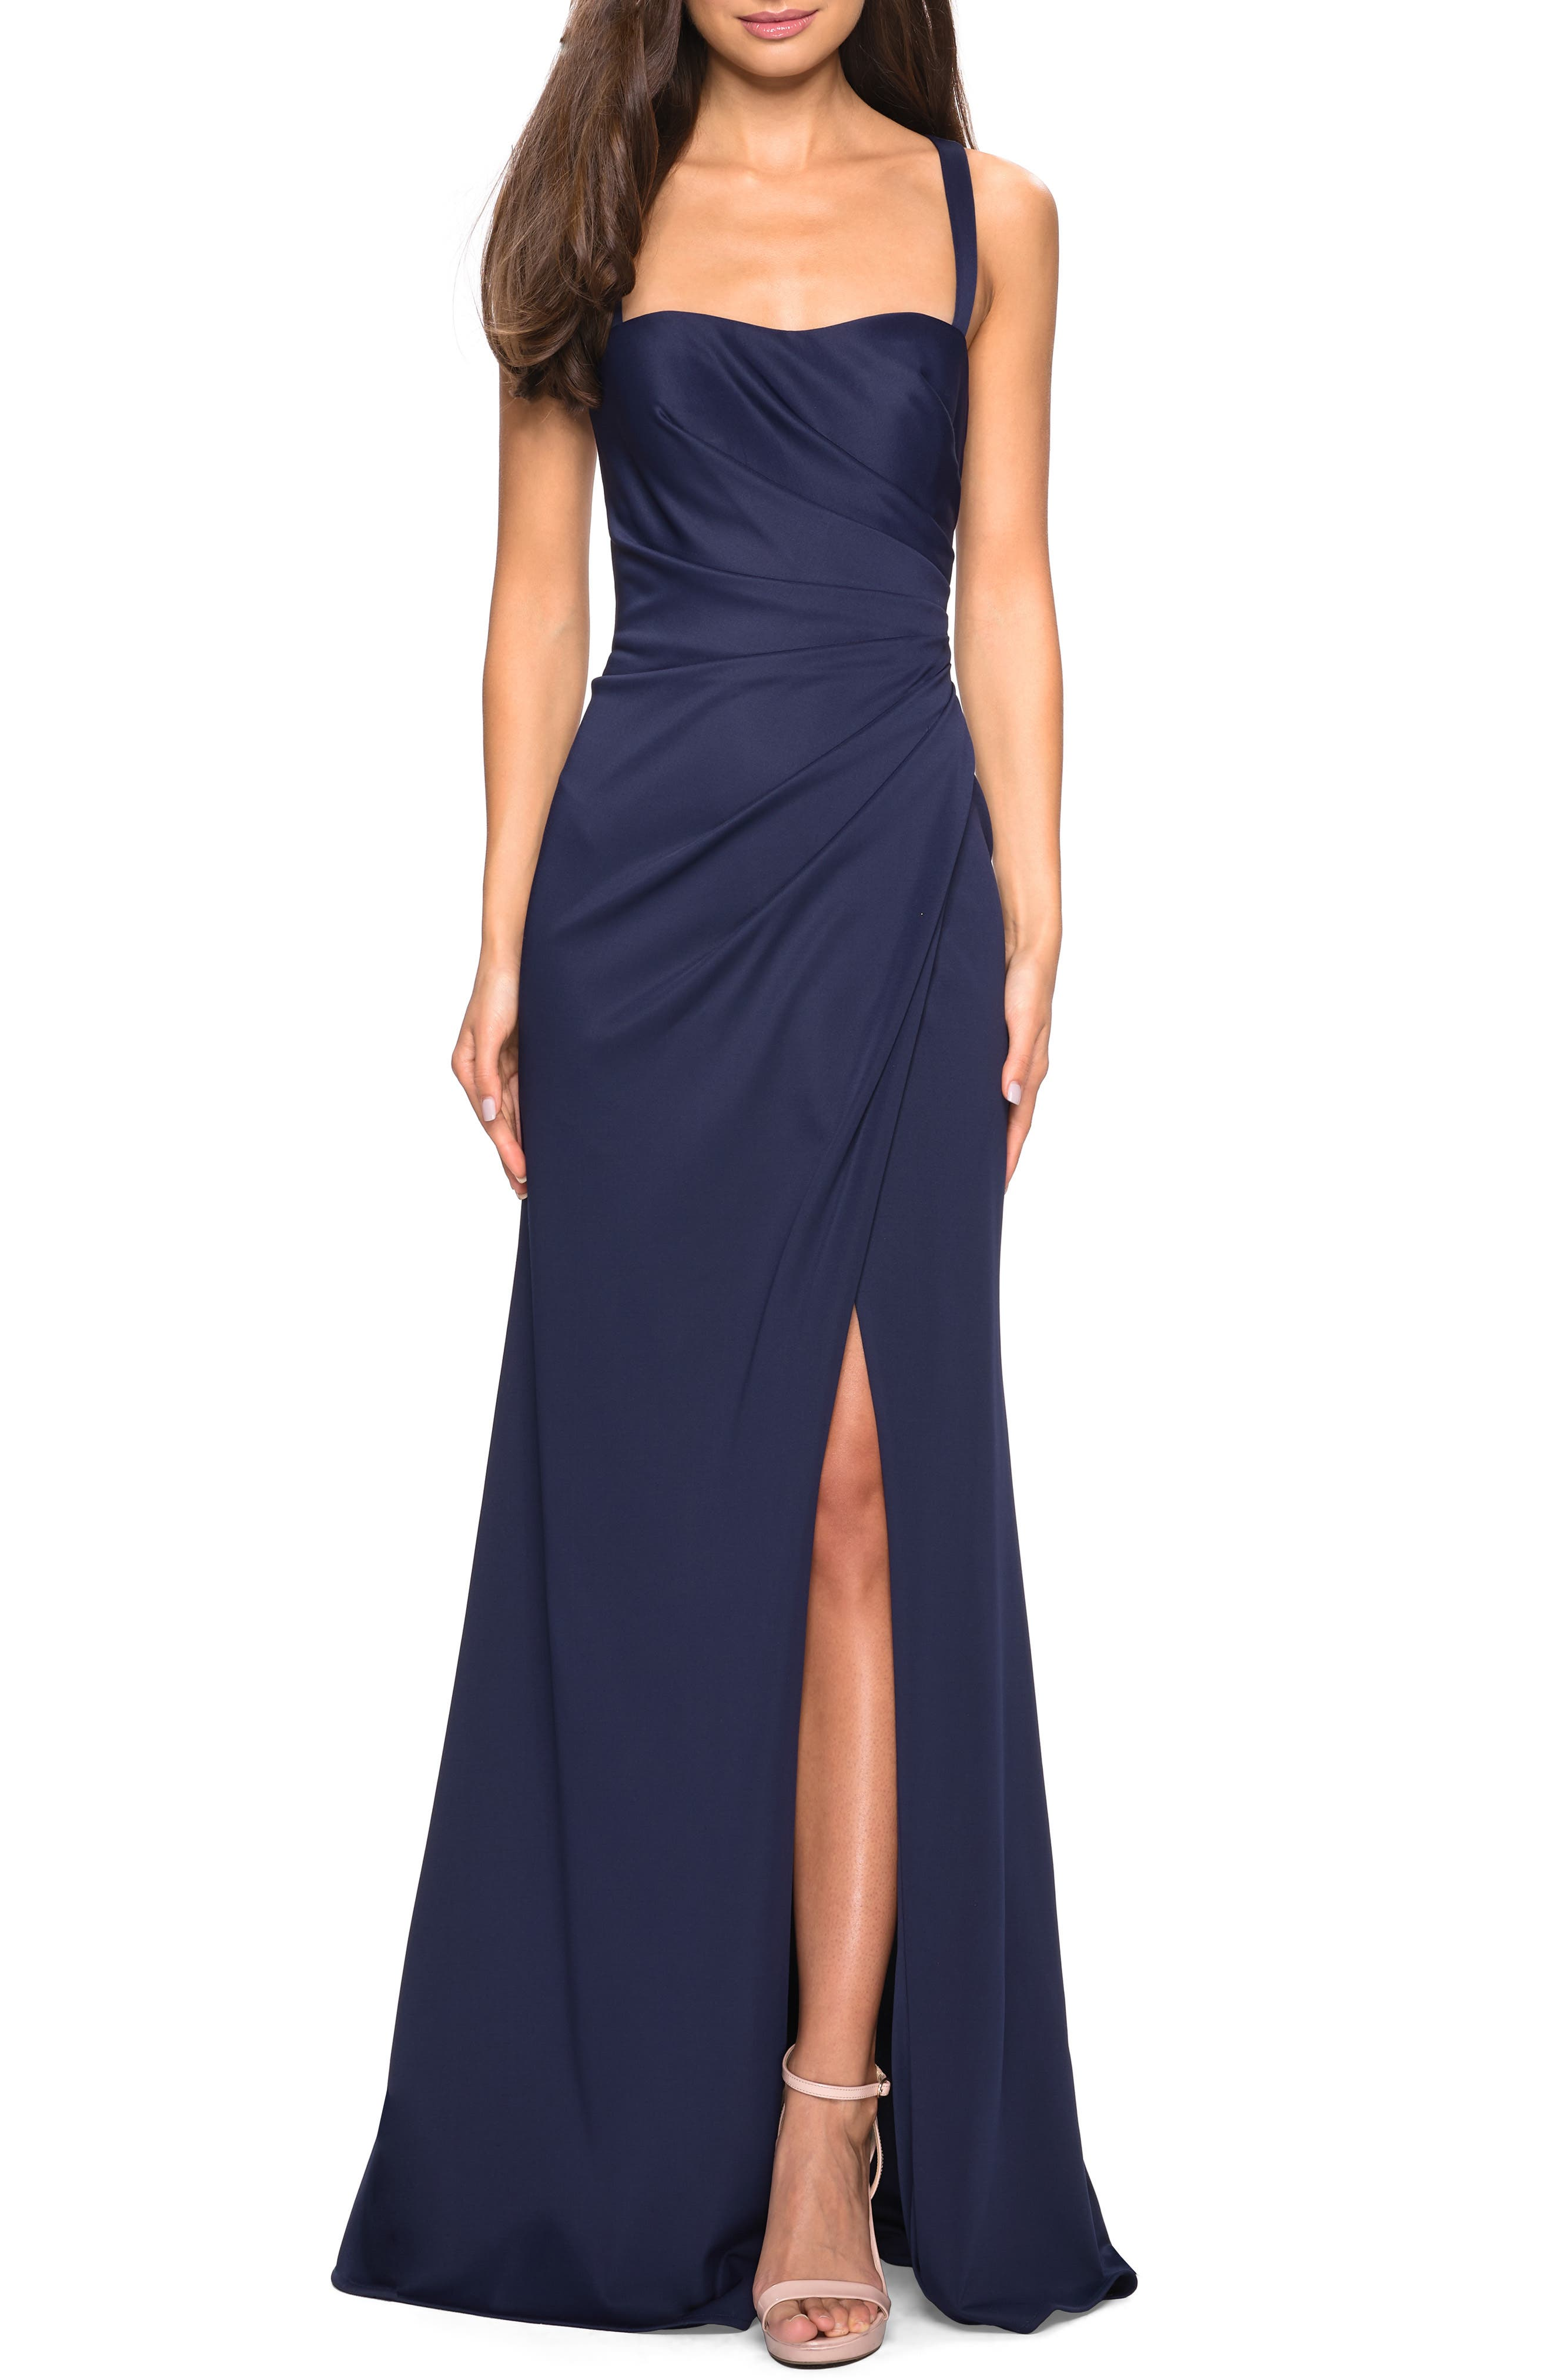 La Femme Ruched Soft Jersey Evening Dress, Blue